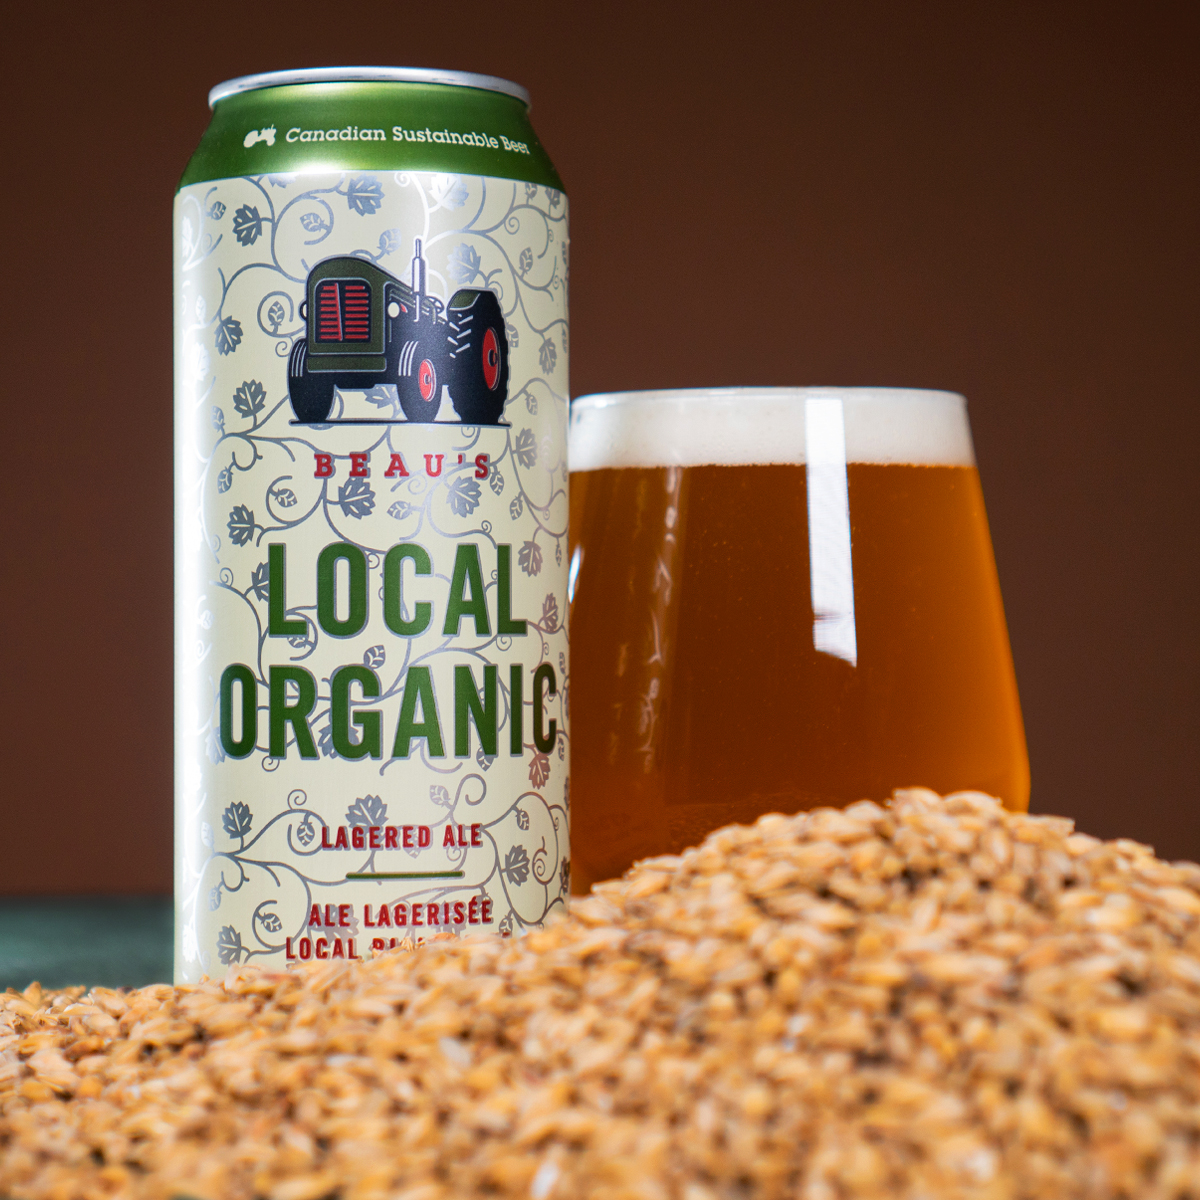 A can of Beau's local organic, beside a glass of the beer with grain in the foreground.